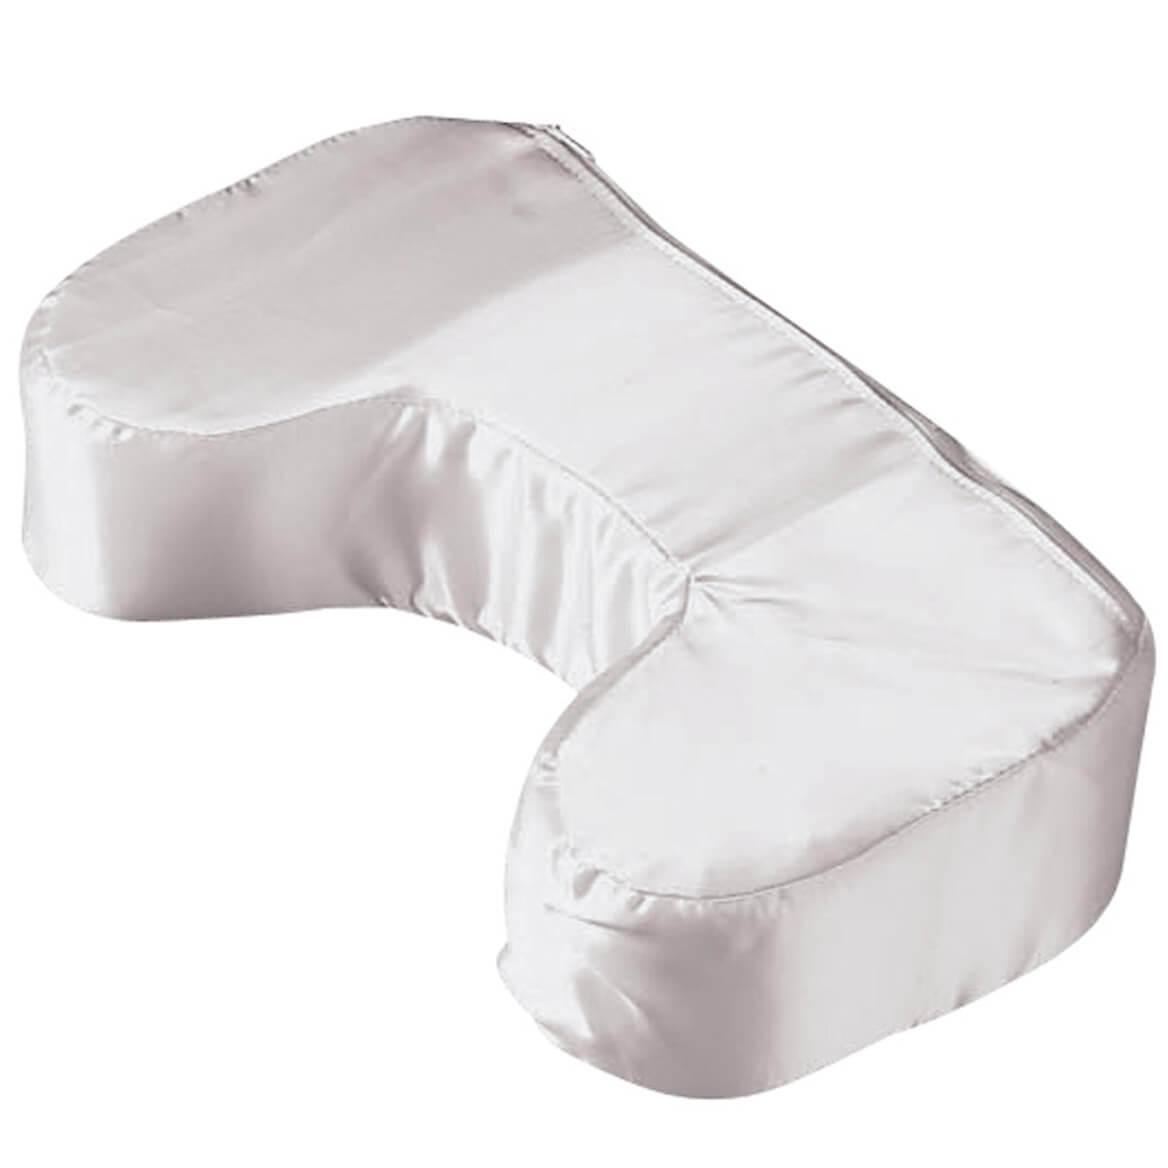 Cervical Support Pillow Replacement Cover-310581